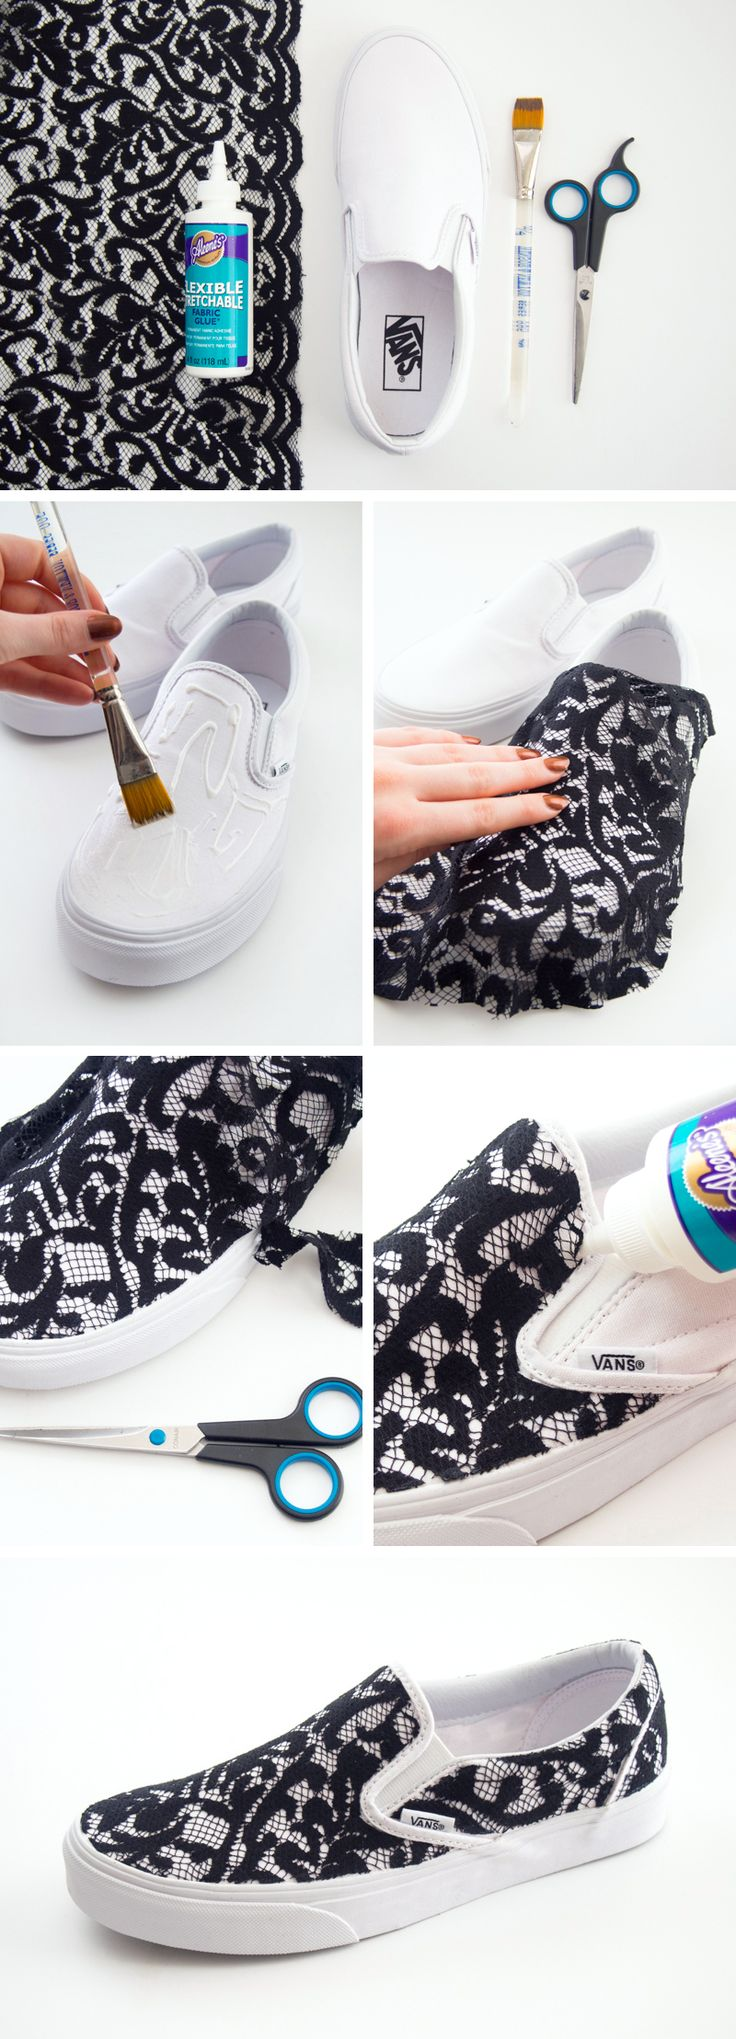 DIY: lace slip-on sneakers: Diy Shoes, Ideas, Vans, Diy Lace, Diy'S, Diy Crafts, Diy Sneakers, Diy Clothing, Lace Shoes